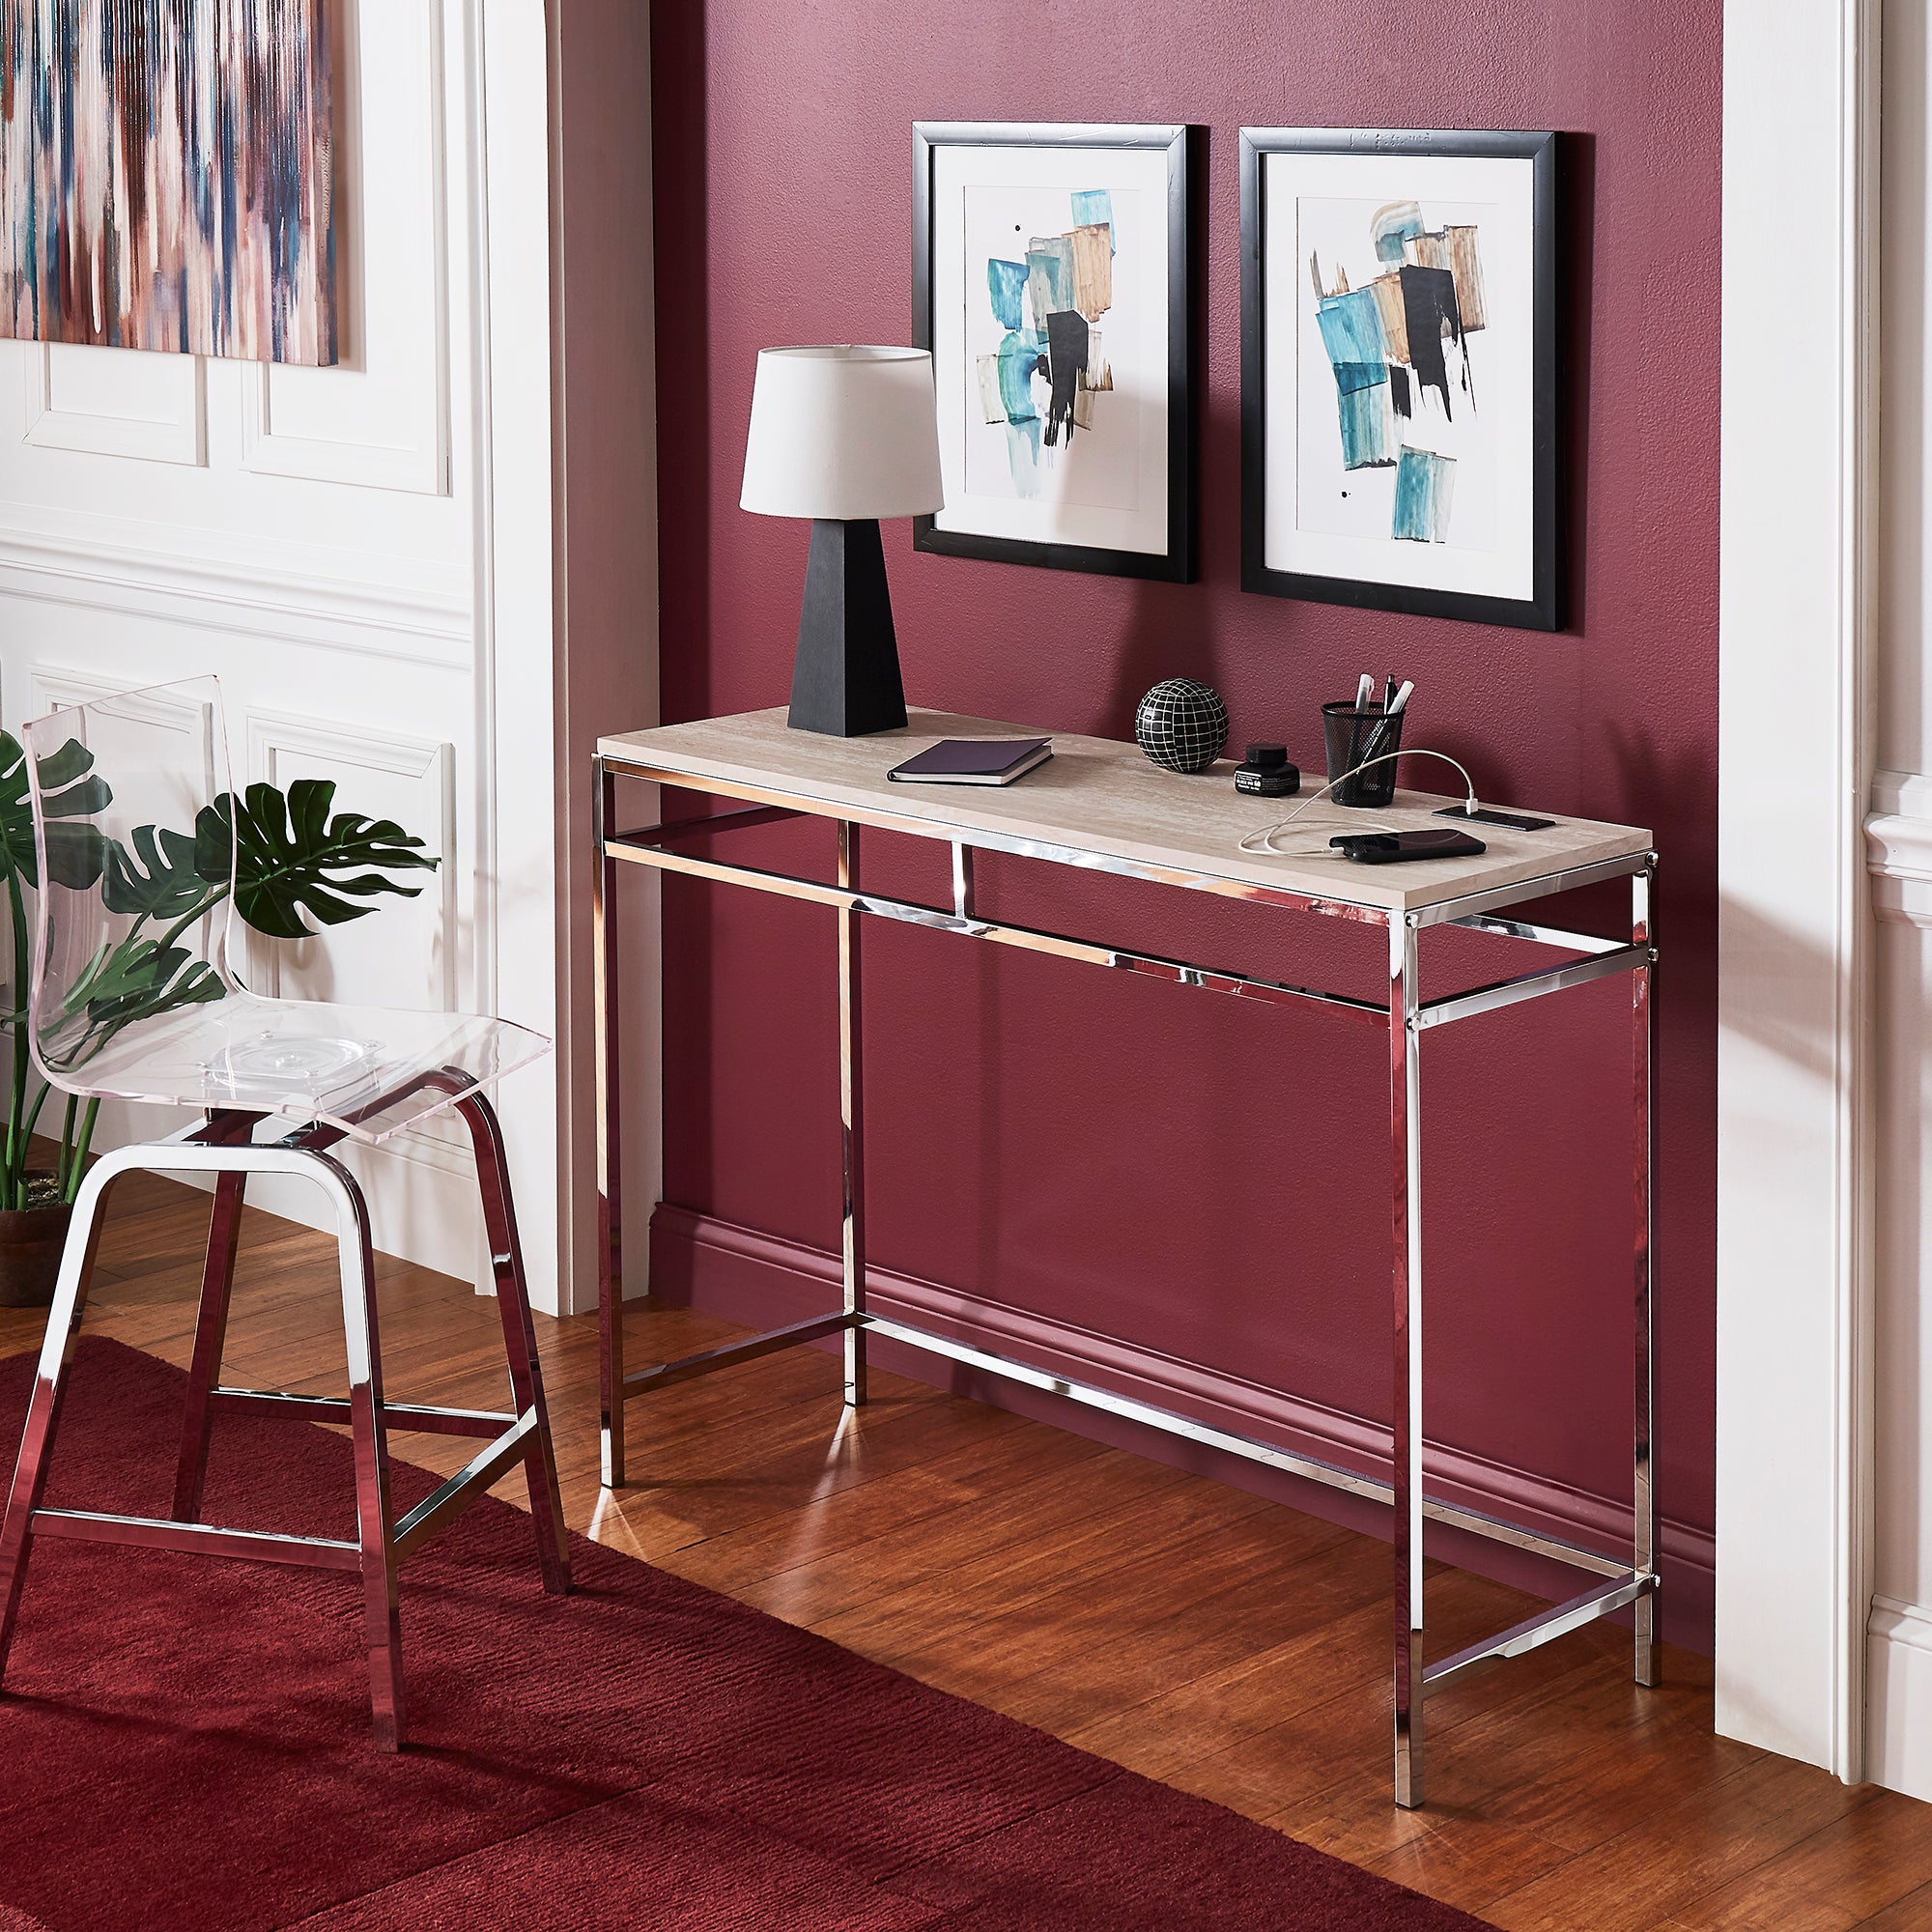 Chrome Finish Counter Height Desk with Faux Marble Top and USB Charging Port